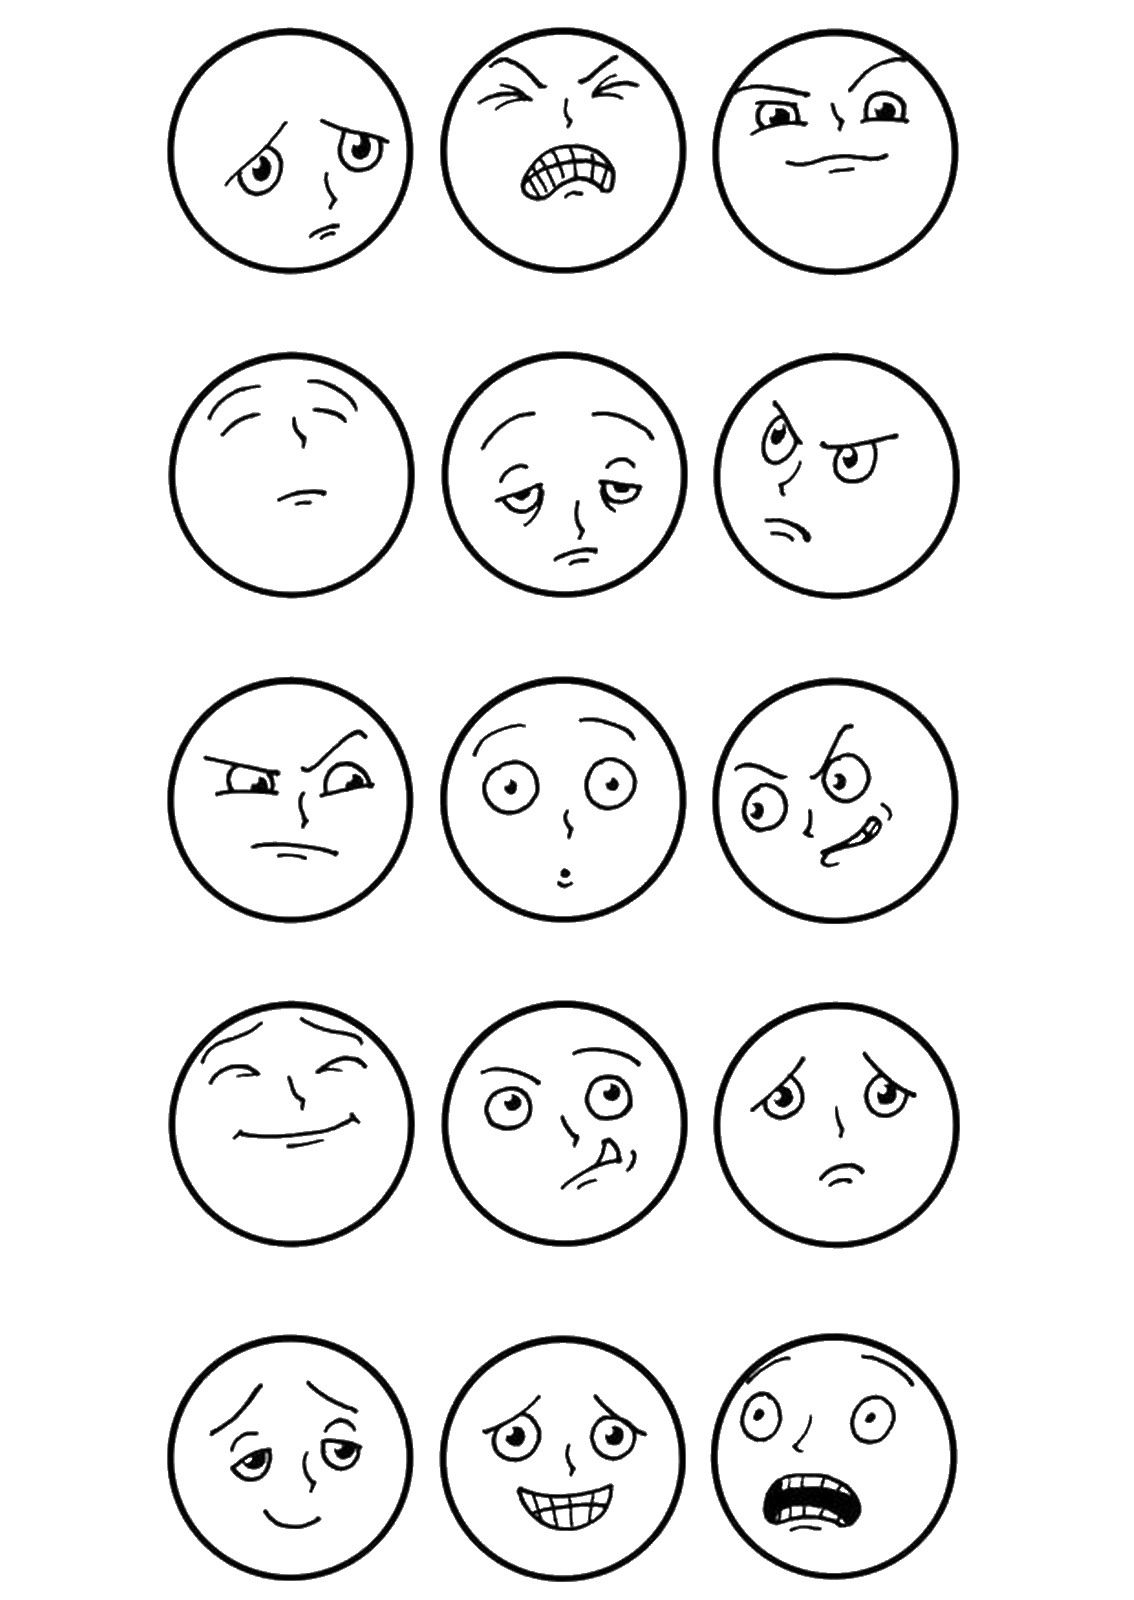 Top 20 Free Printable Emotions Coloring Pages Online | Coloring - Free Printable Pictures Of Emotions